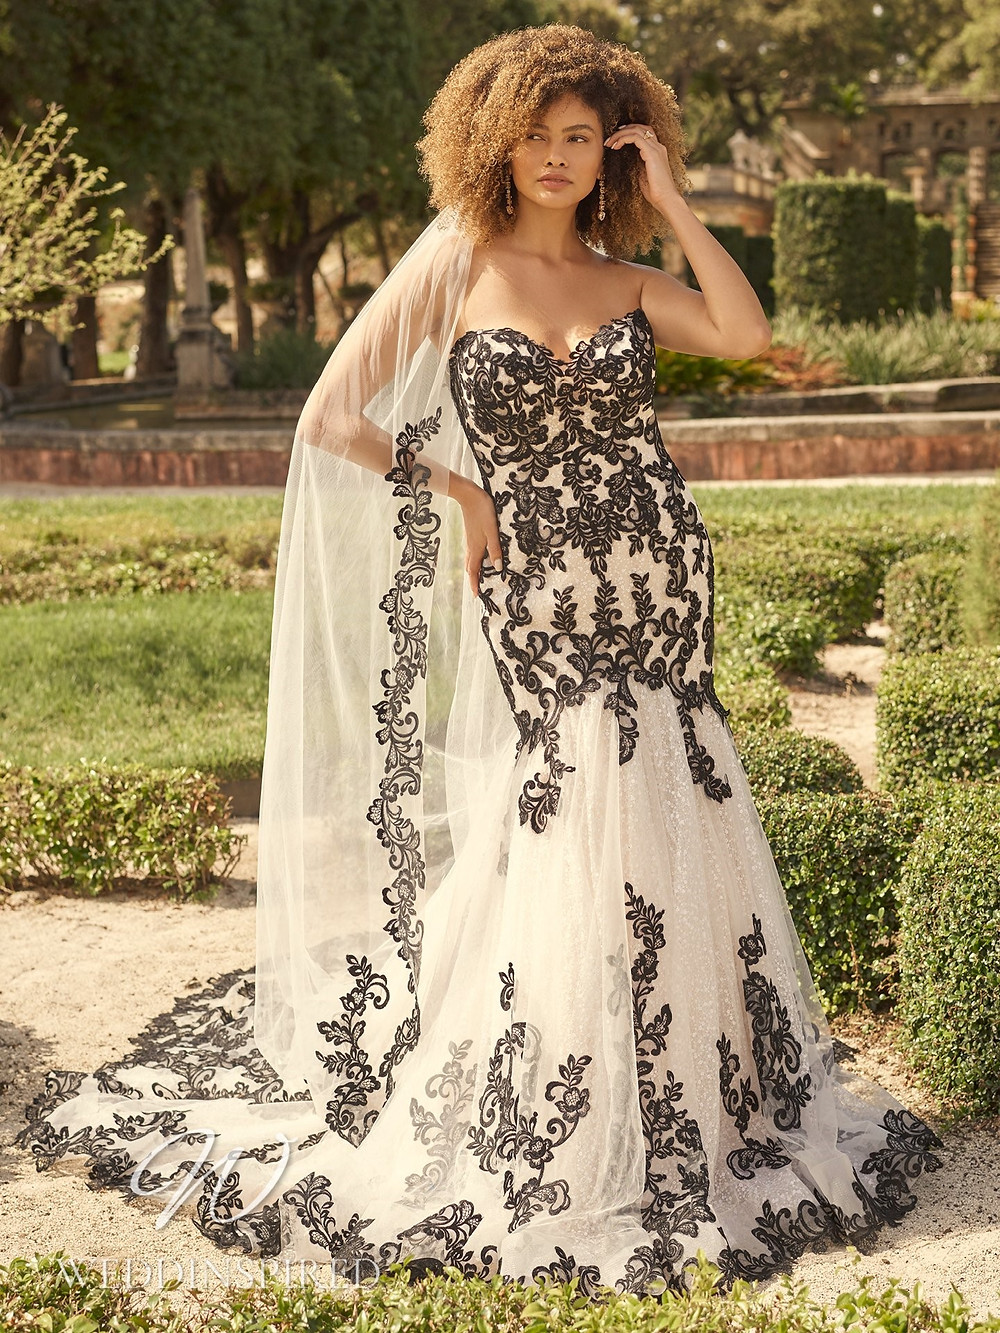 A Maggie Sottero 2021 black and white lace strapless mermaid wedding dress